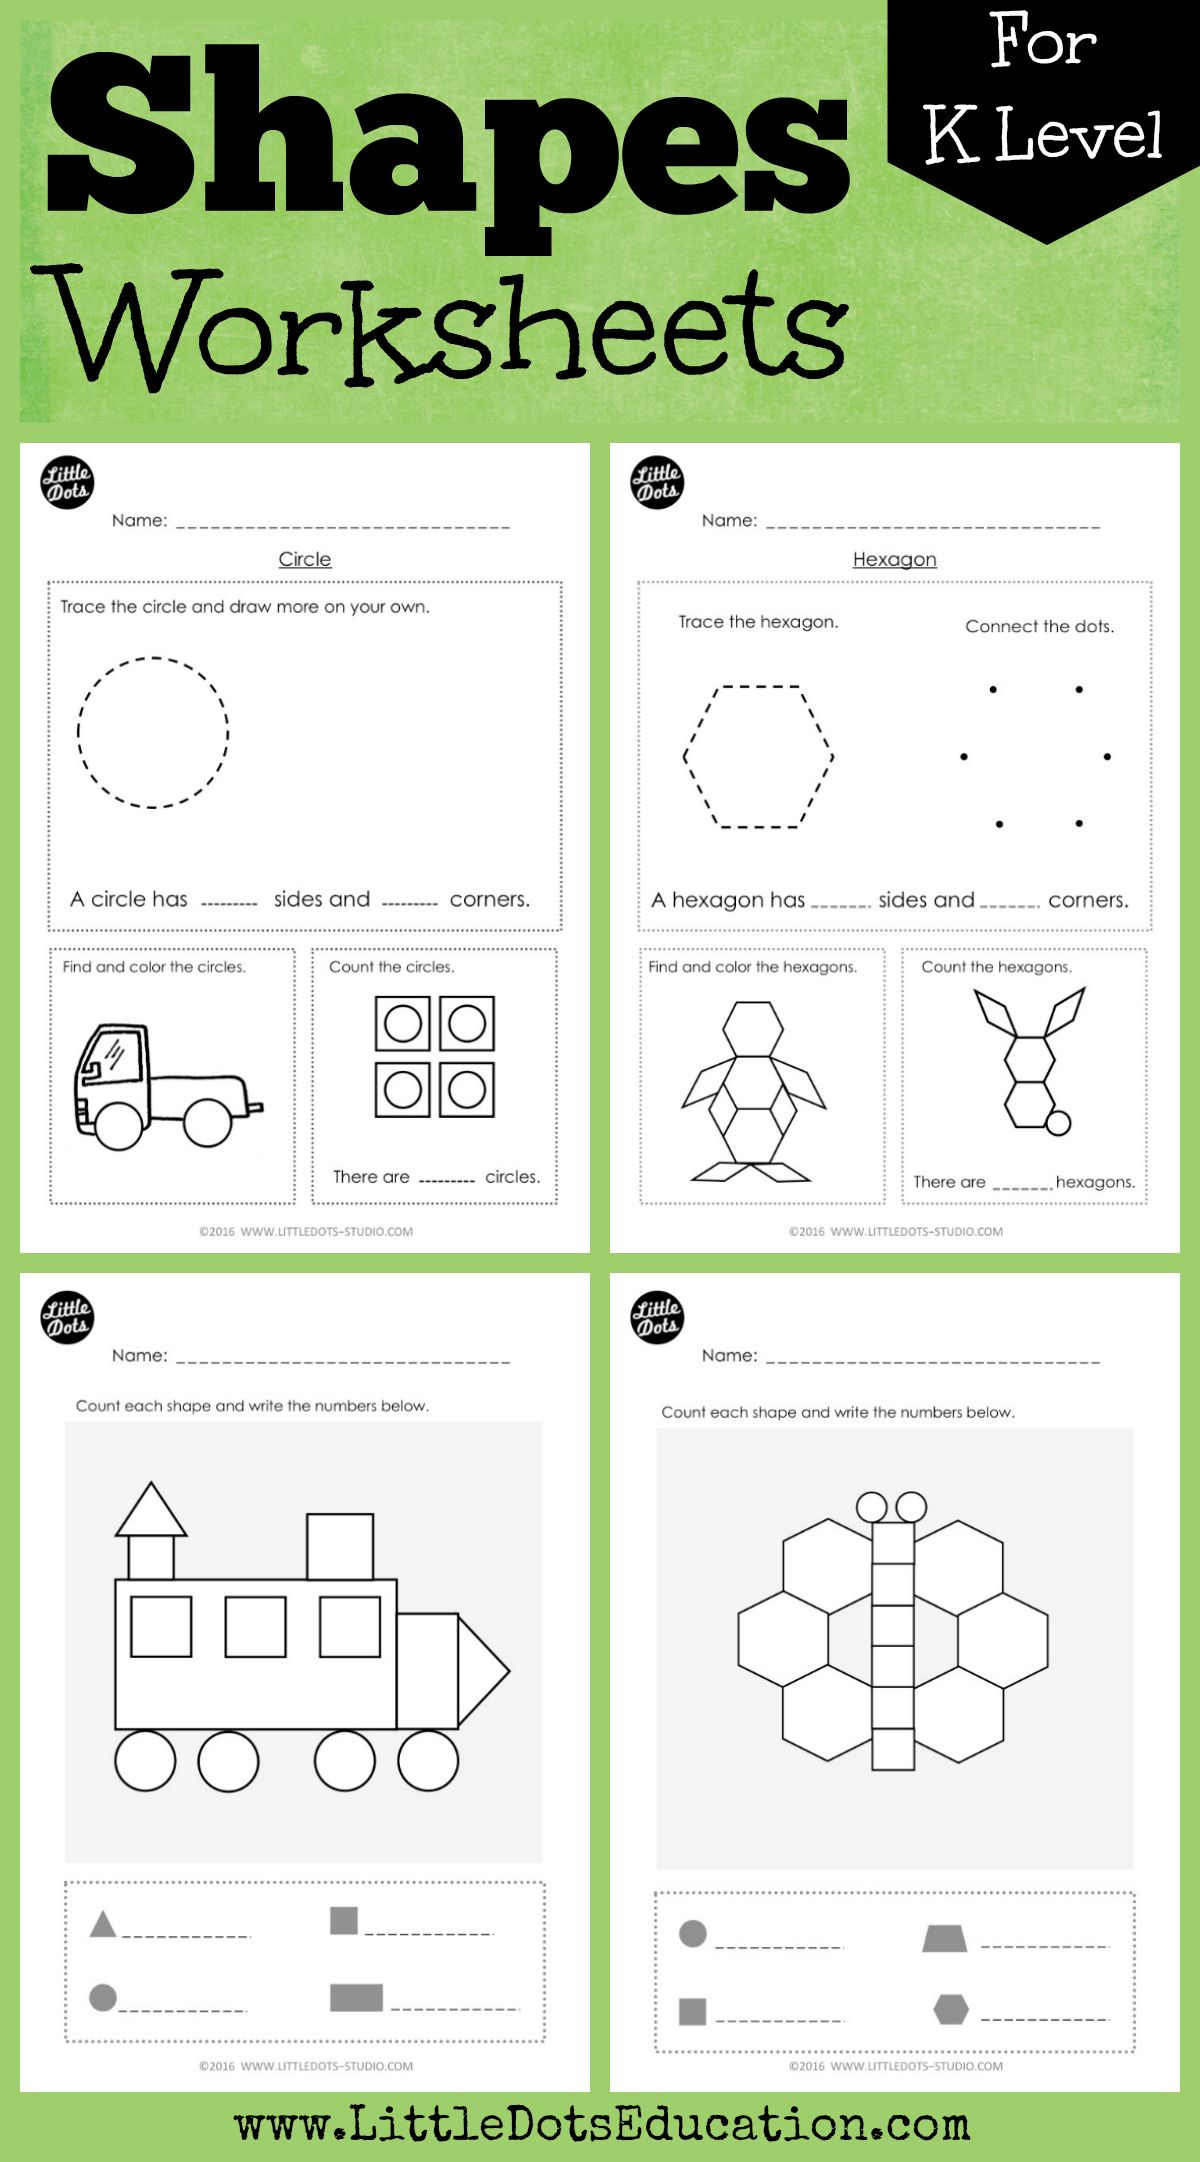 Download Shapes Worksheets And Activities For Kindergarten Level